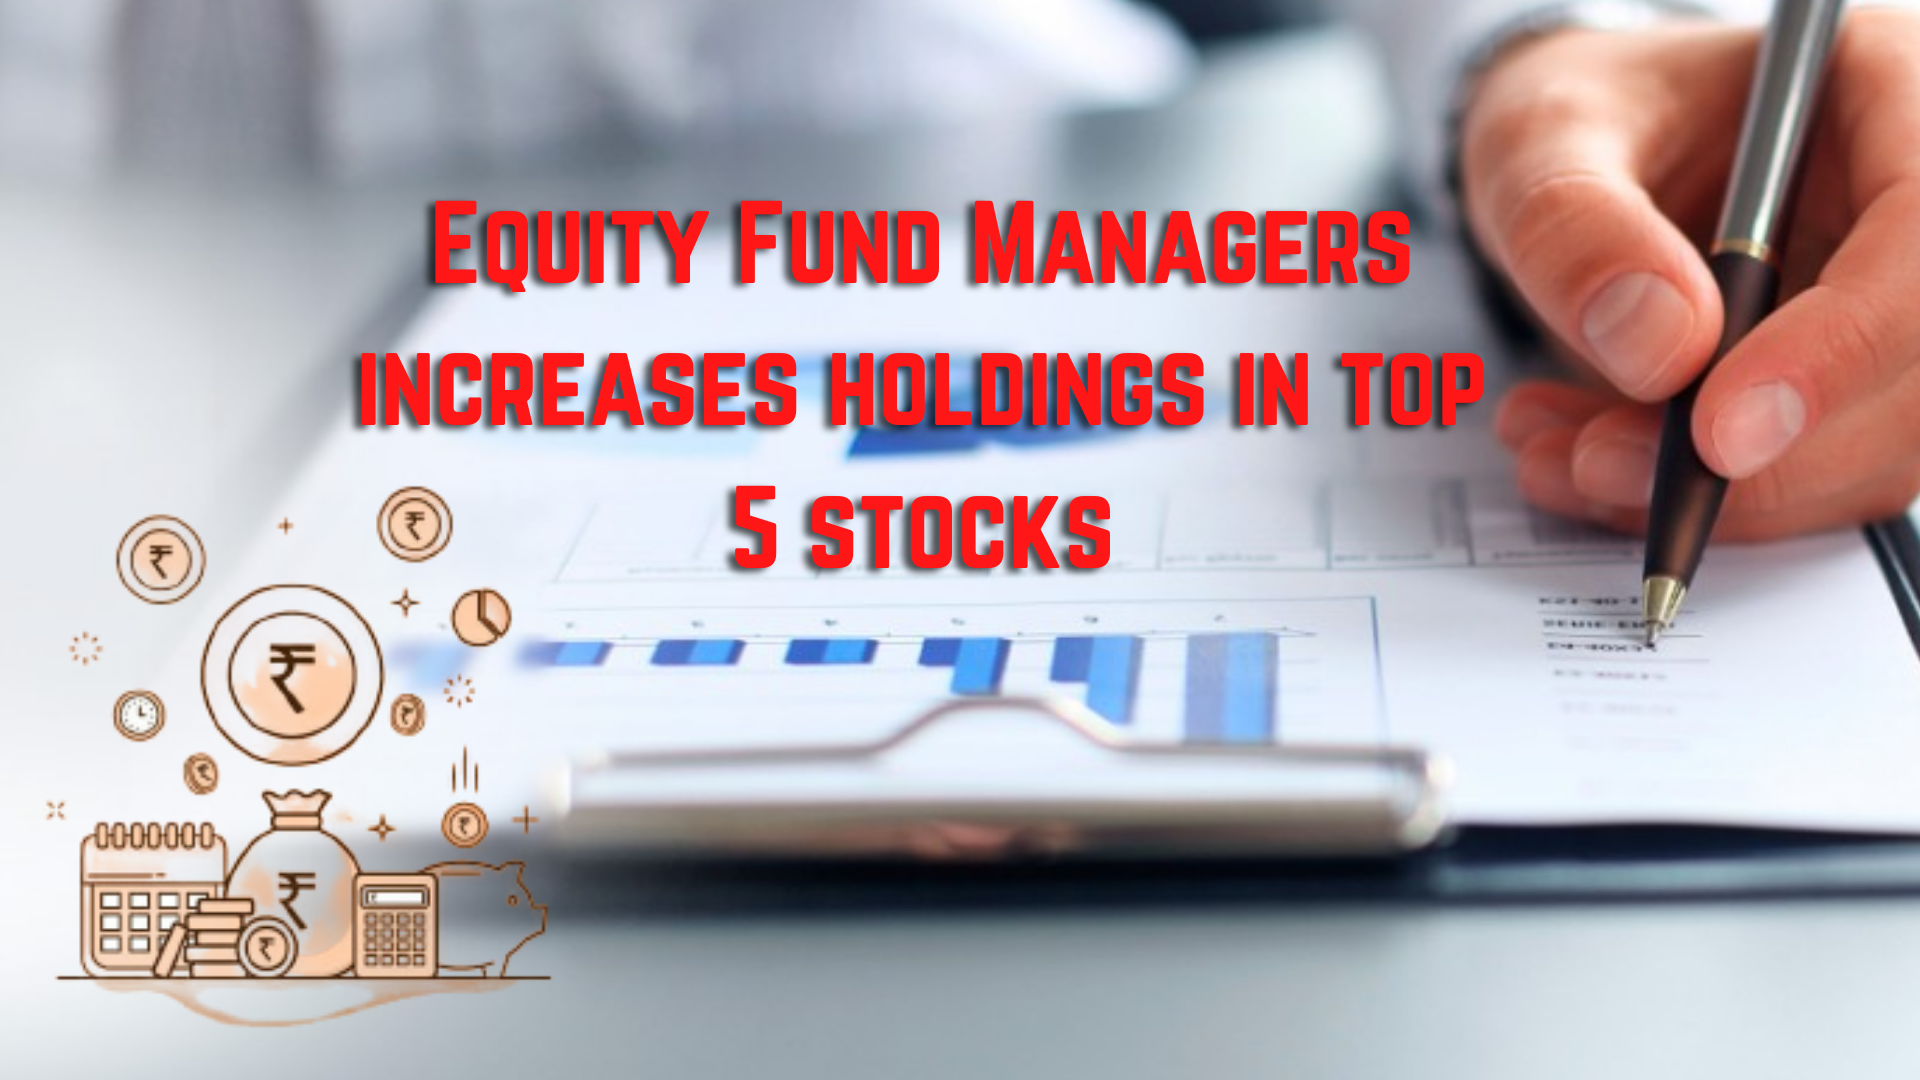 Equity Fund Managers increases holdings in top 5 stocks